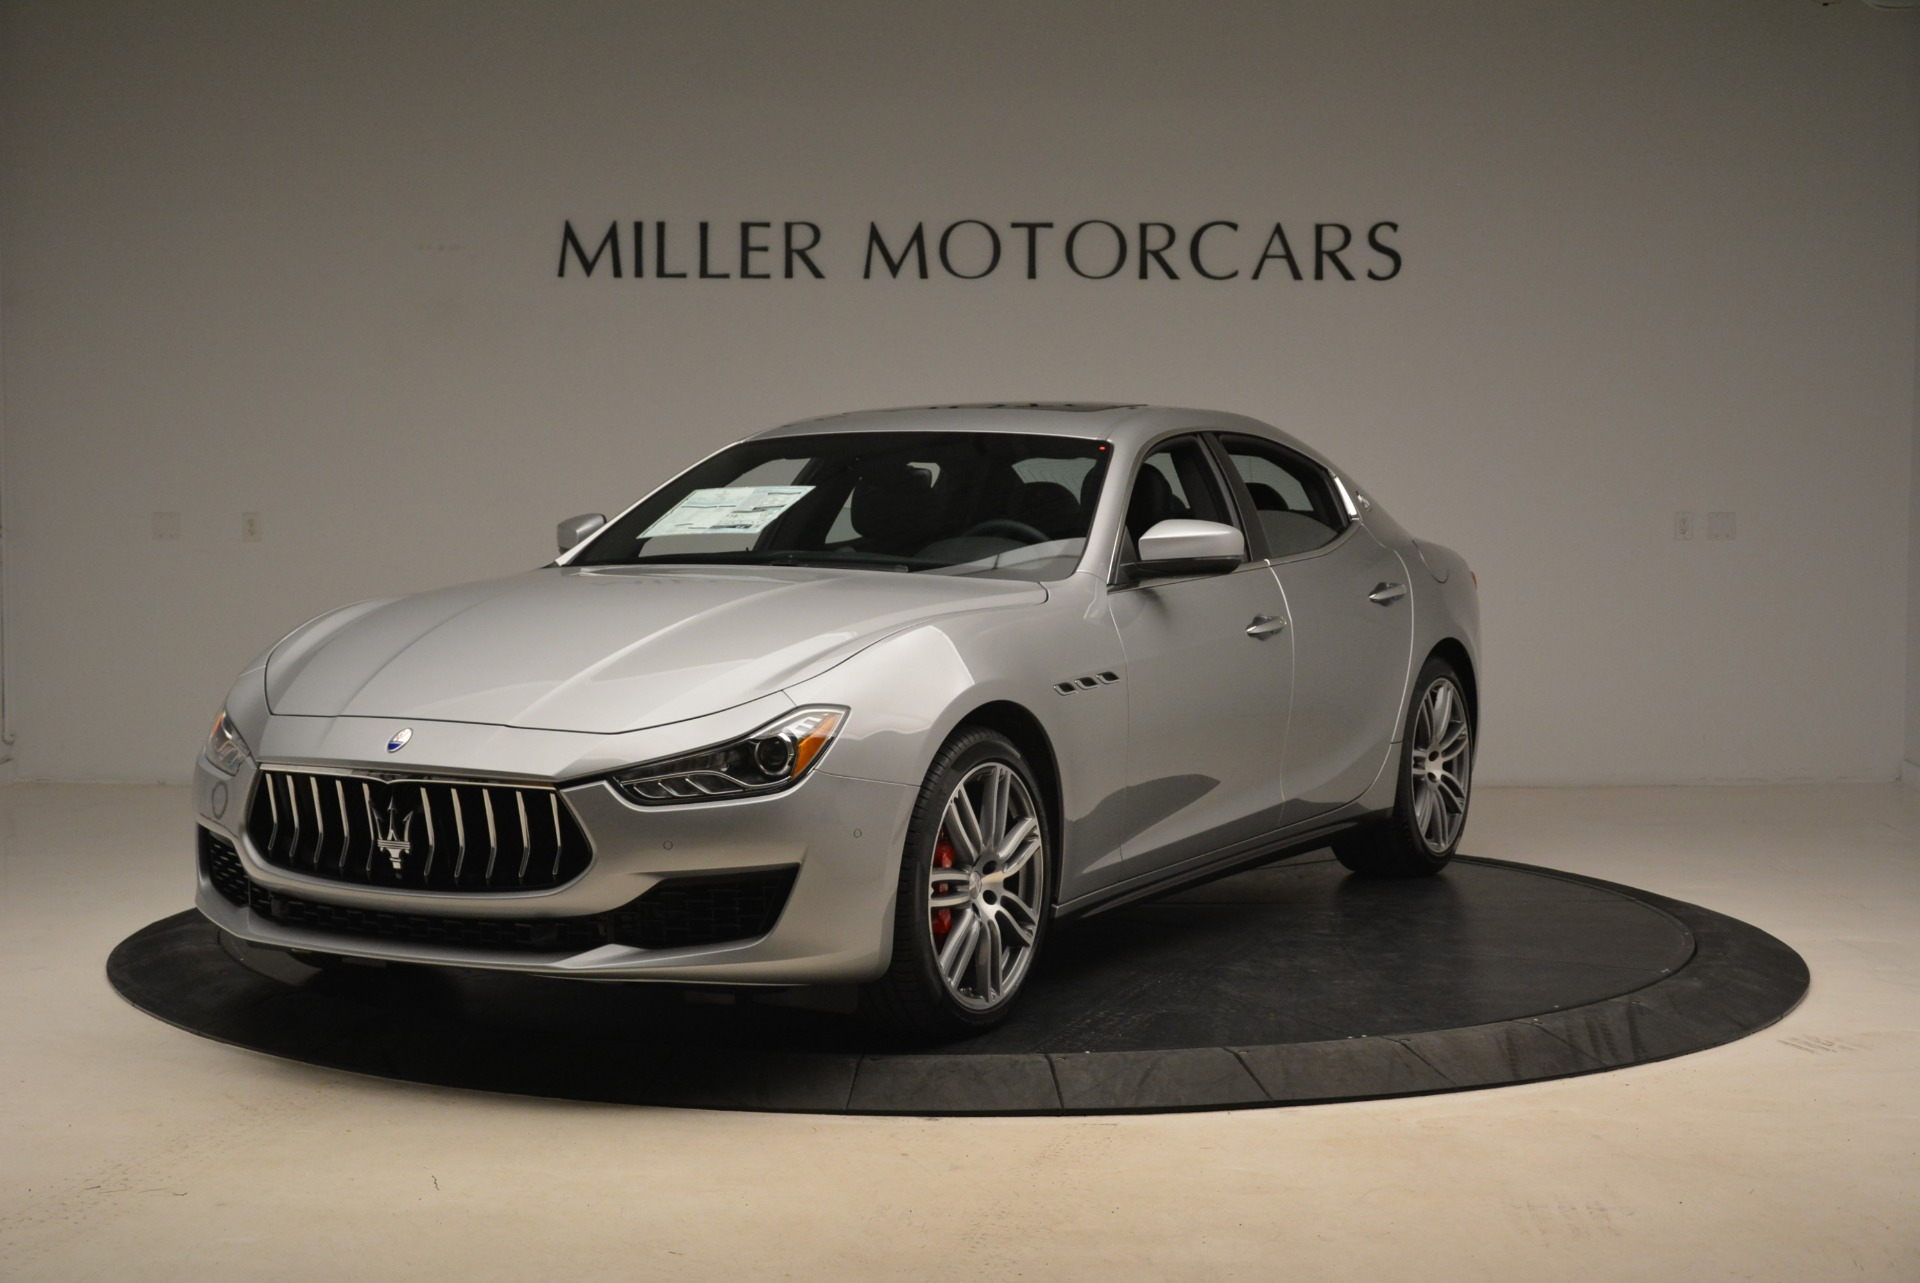 Used 2018 Maserati Ghibli S Q4 for sale Sold at Aston Martin of Greenwich in Greenwich CT 06830 1